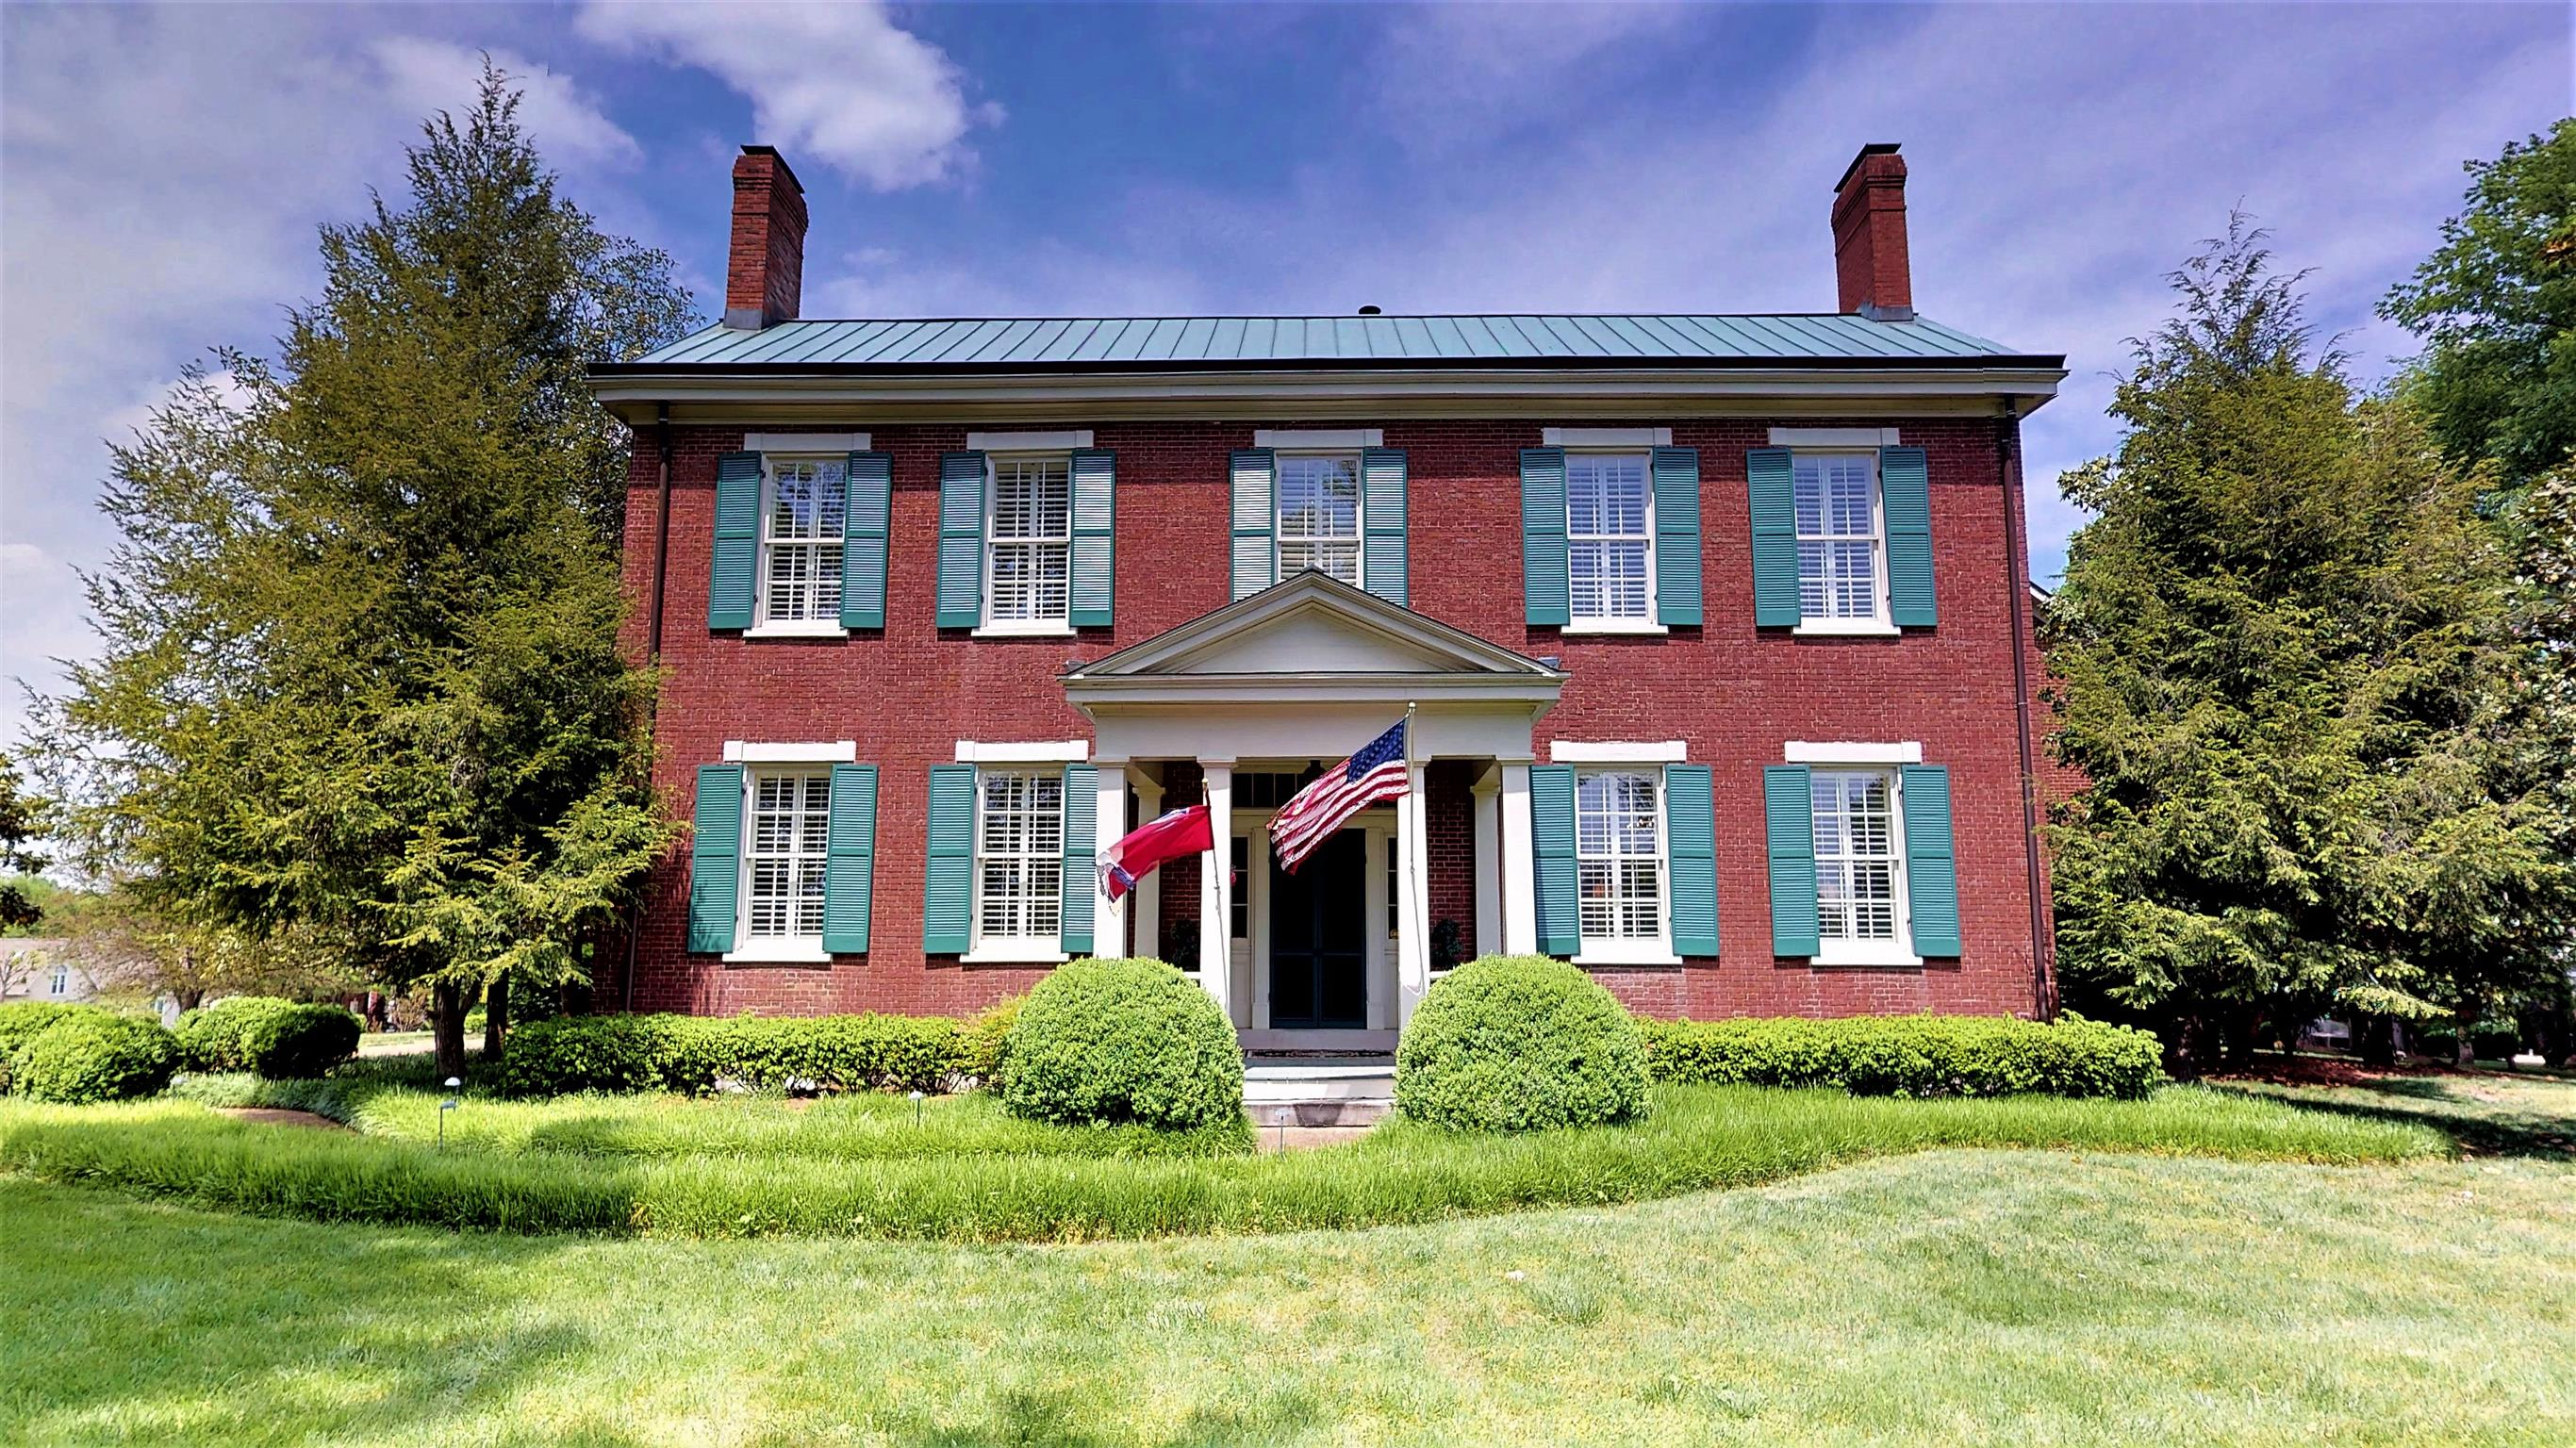 This beautiful historic antebellum home features 2 new HVACS, 3 new water heaters, copper roof, hardwoods throughout, cherry cabinetry, 12' ceilings, HUGE catering kitchen with SS dacor appliances, private courtyard (unaccessible from the outside), 9 fireplaces, plantation shutters, 6' stain glass window and MUCH more! Too much to list!